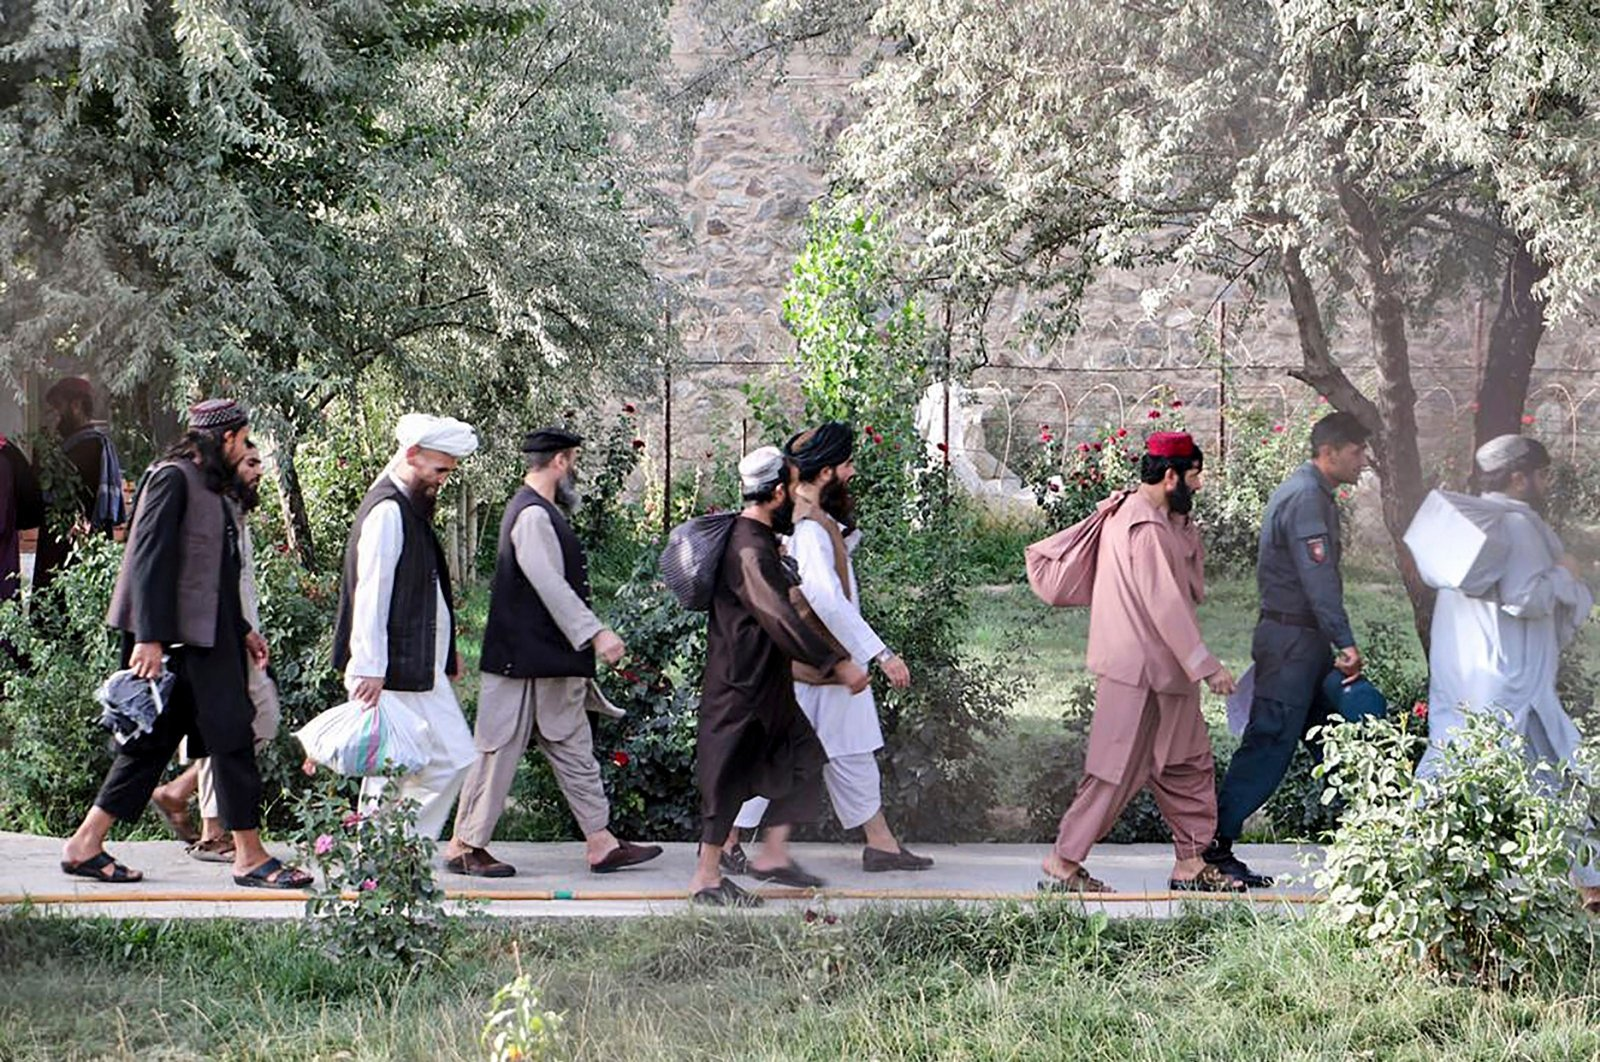 Taliban prisoners walk as they are in the process of being released from Pul-e-Charkhi prison on the outskirts of Kabul, Aug. 13, 2020. (AFP Photo)